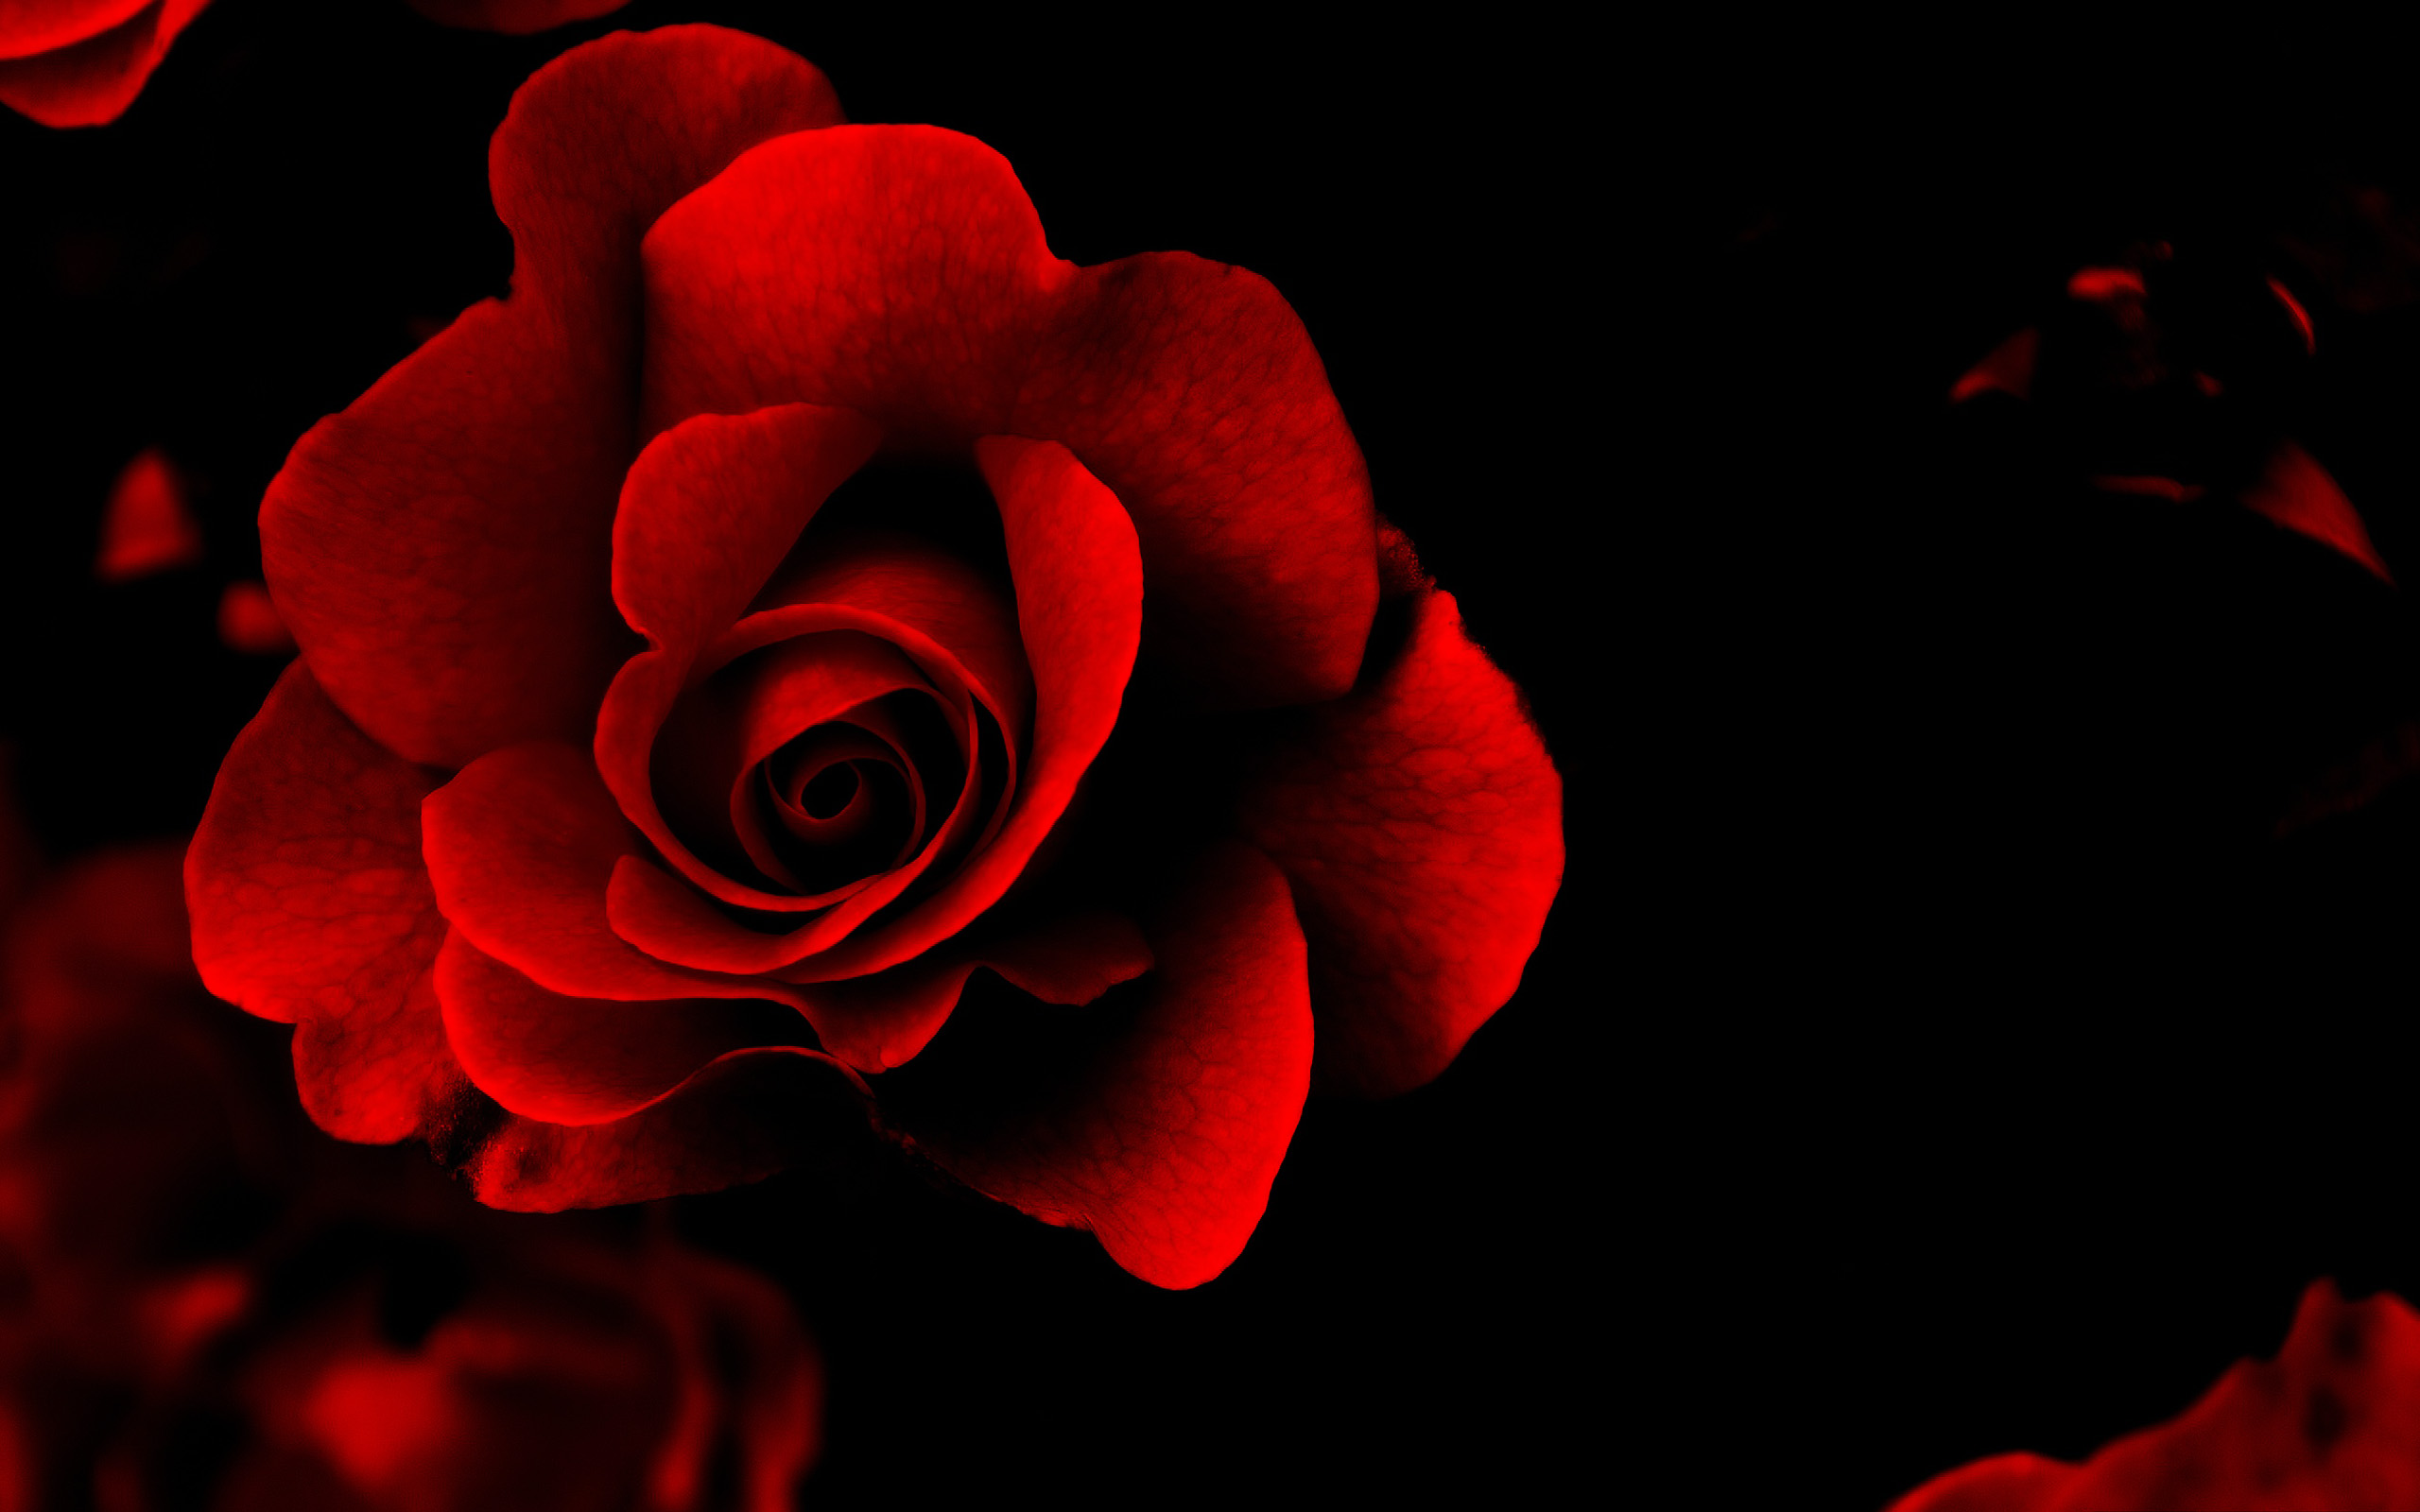 Love Wallpaper With Blood : Love Wallpapers Desktop HD #4038 Wallpaper WallDiskPaper